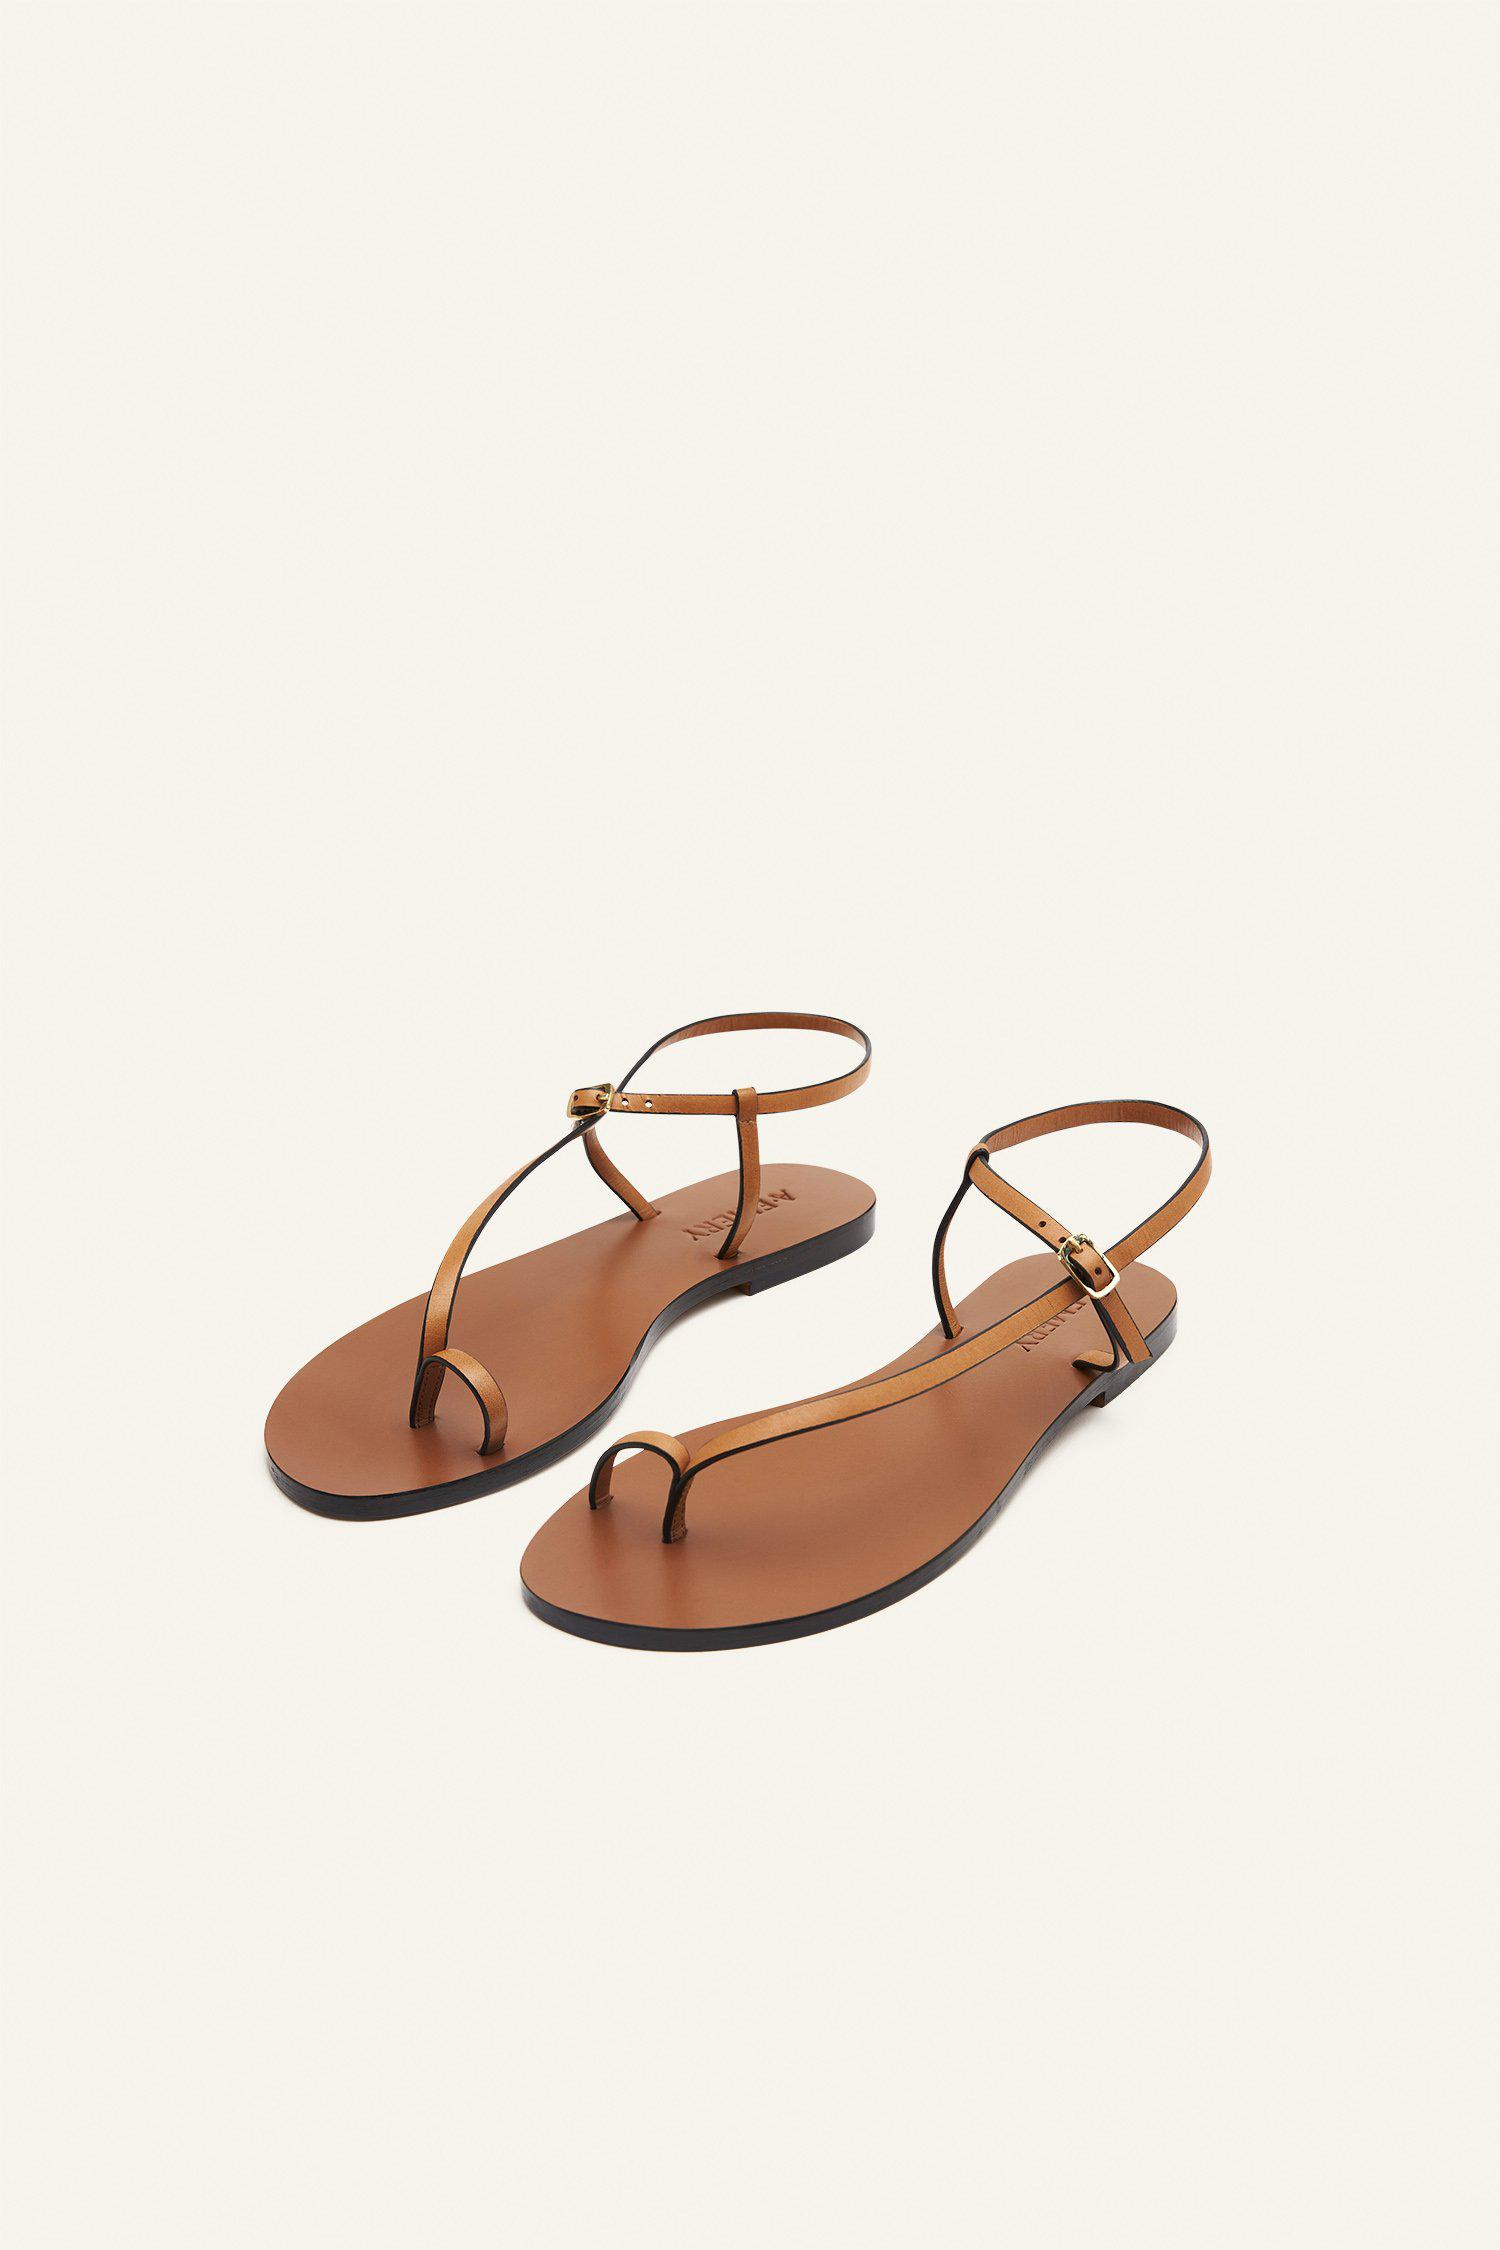 The Lily Sandal 1